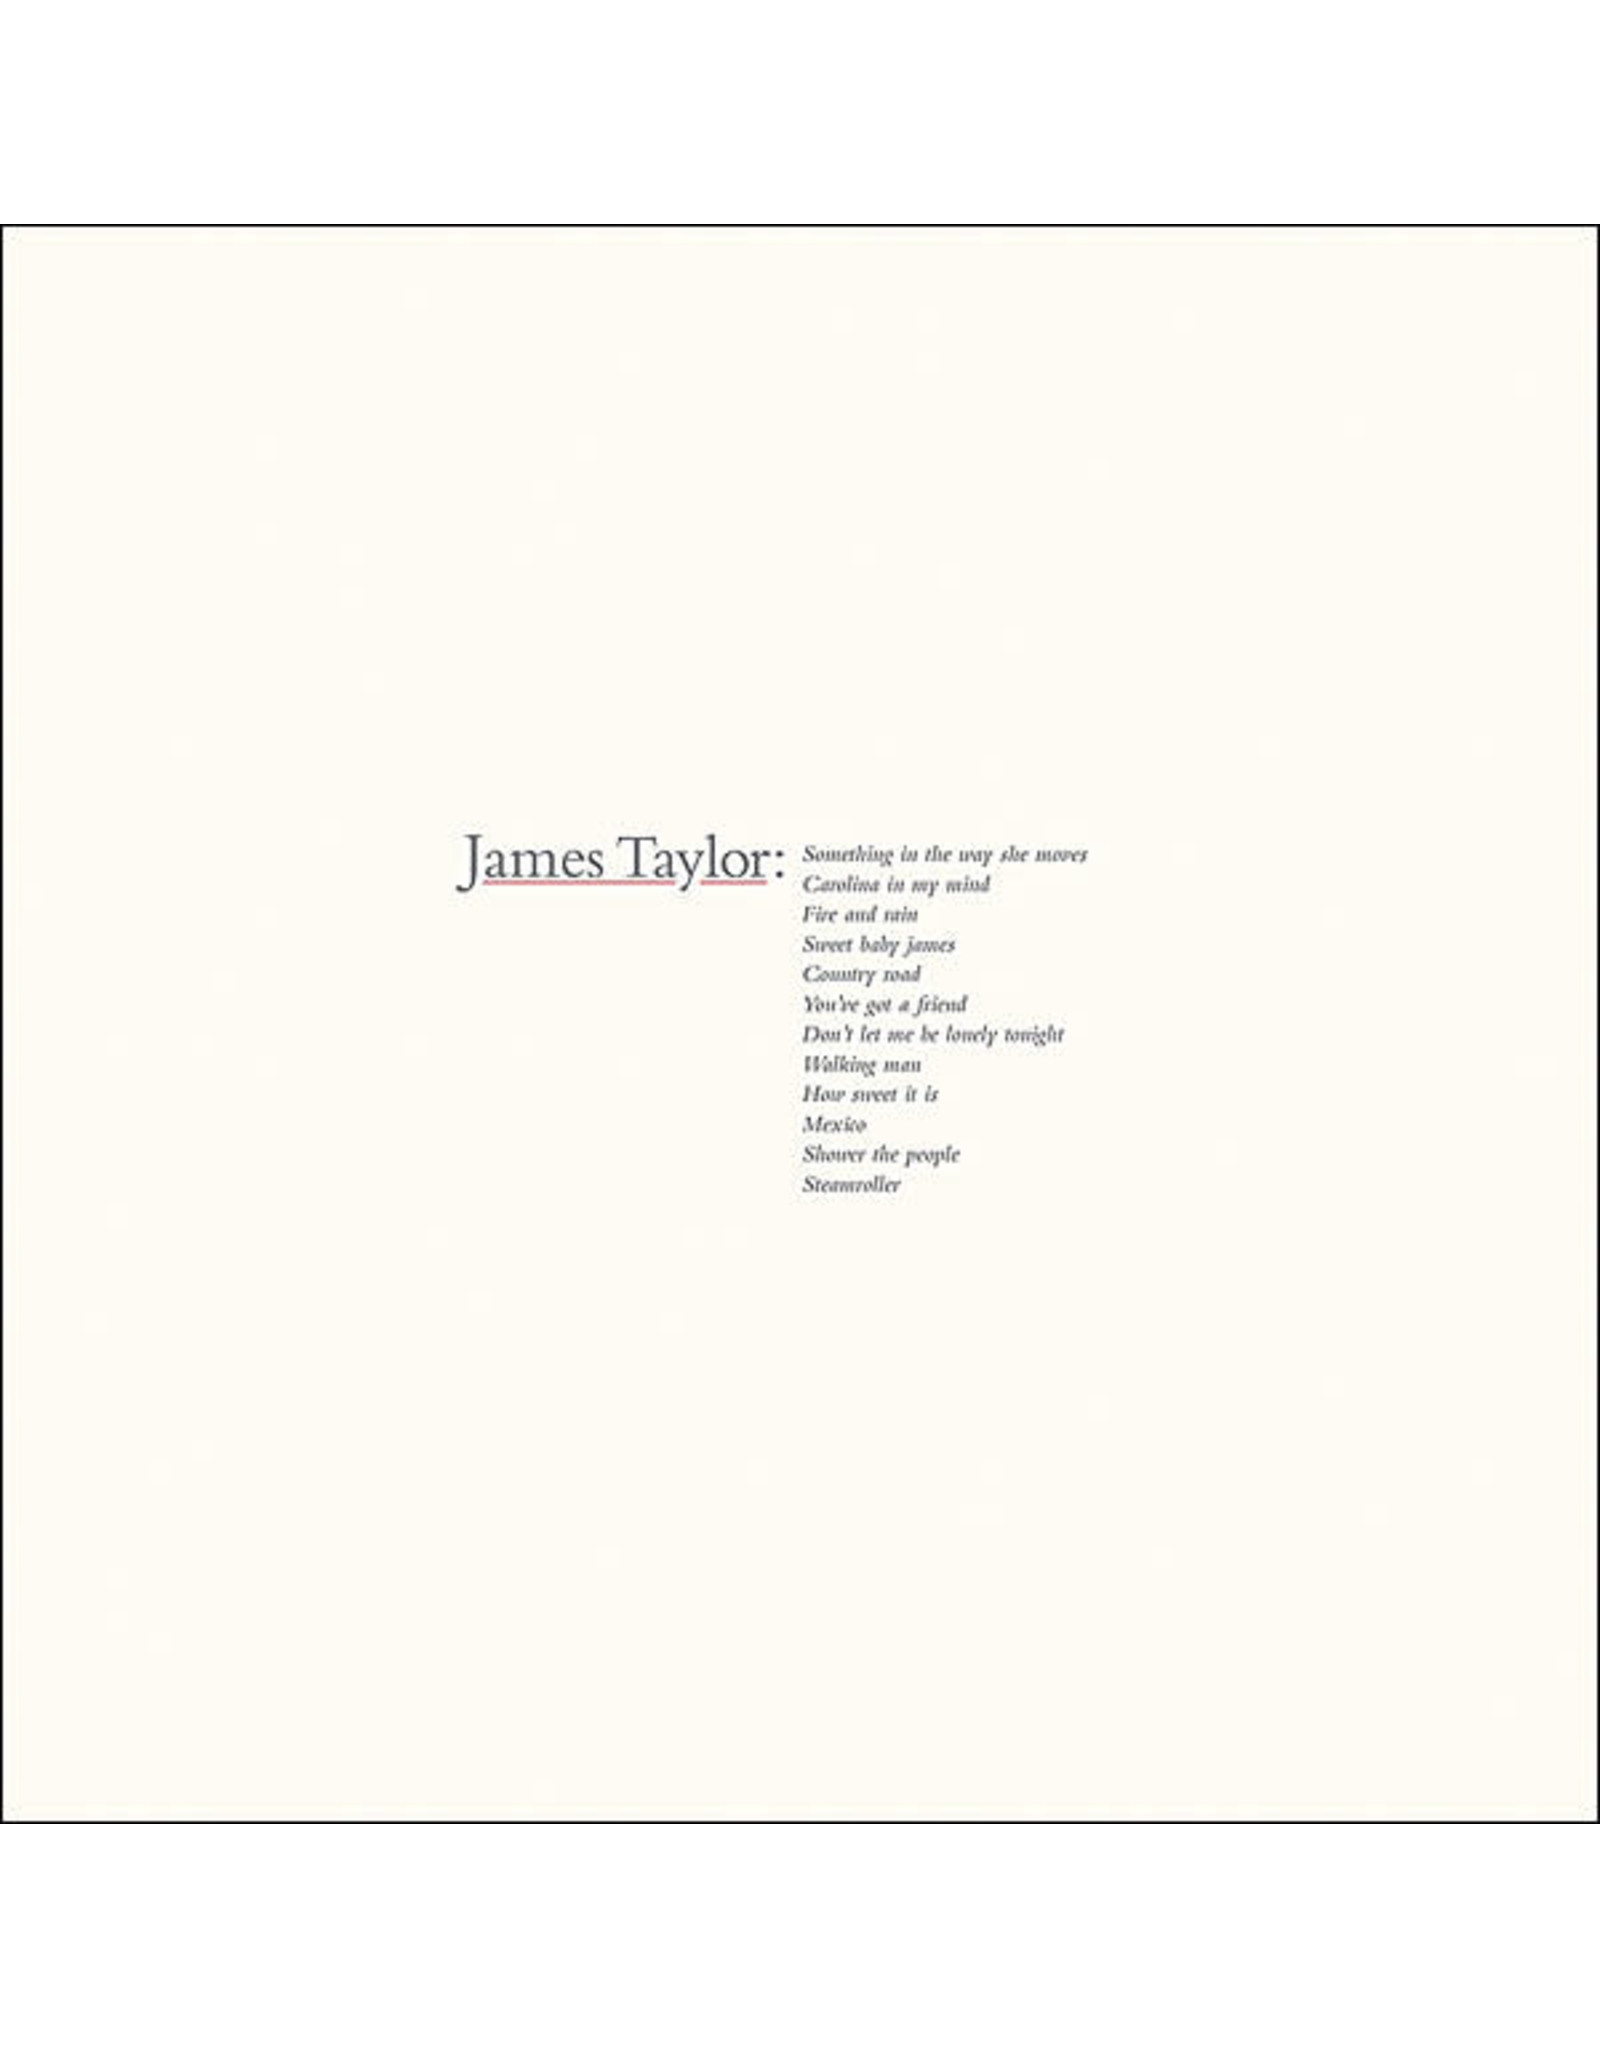 Taylor, James - Greatest Hits LP